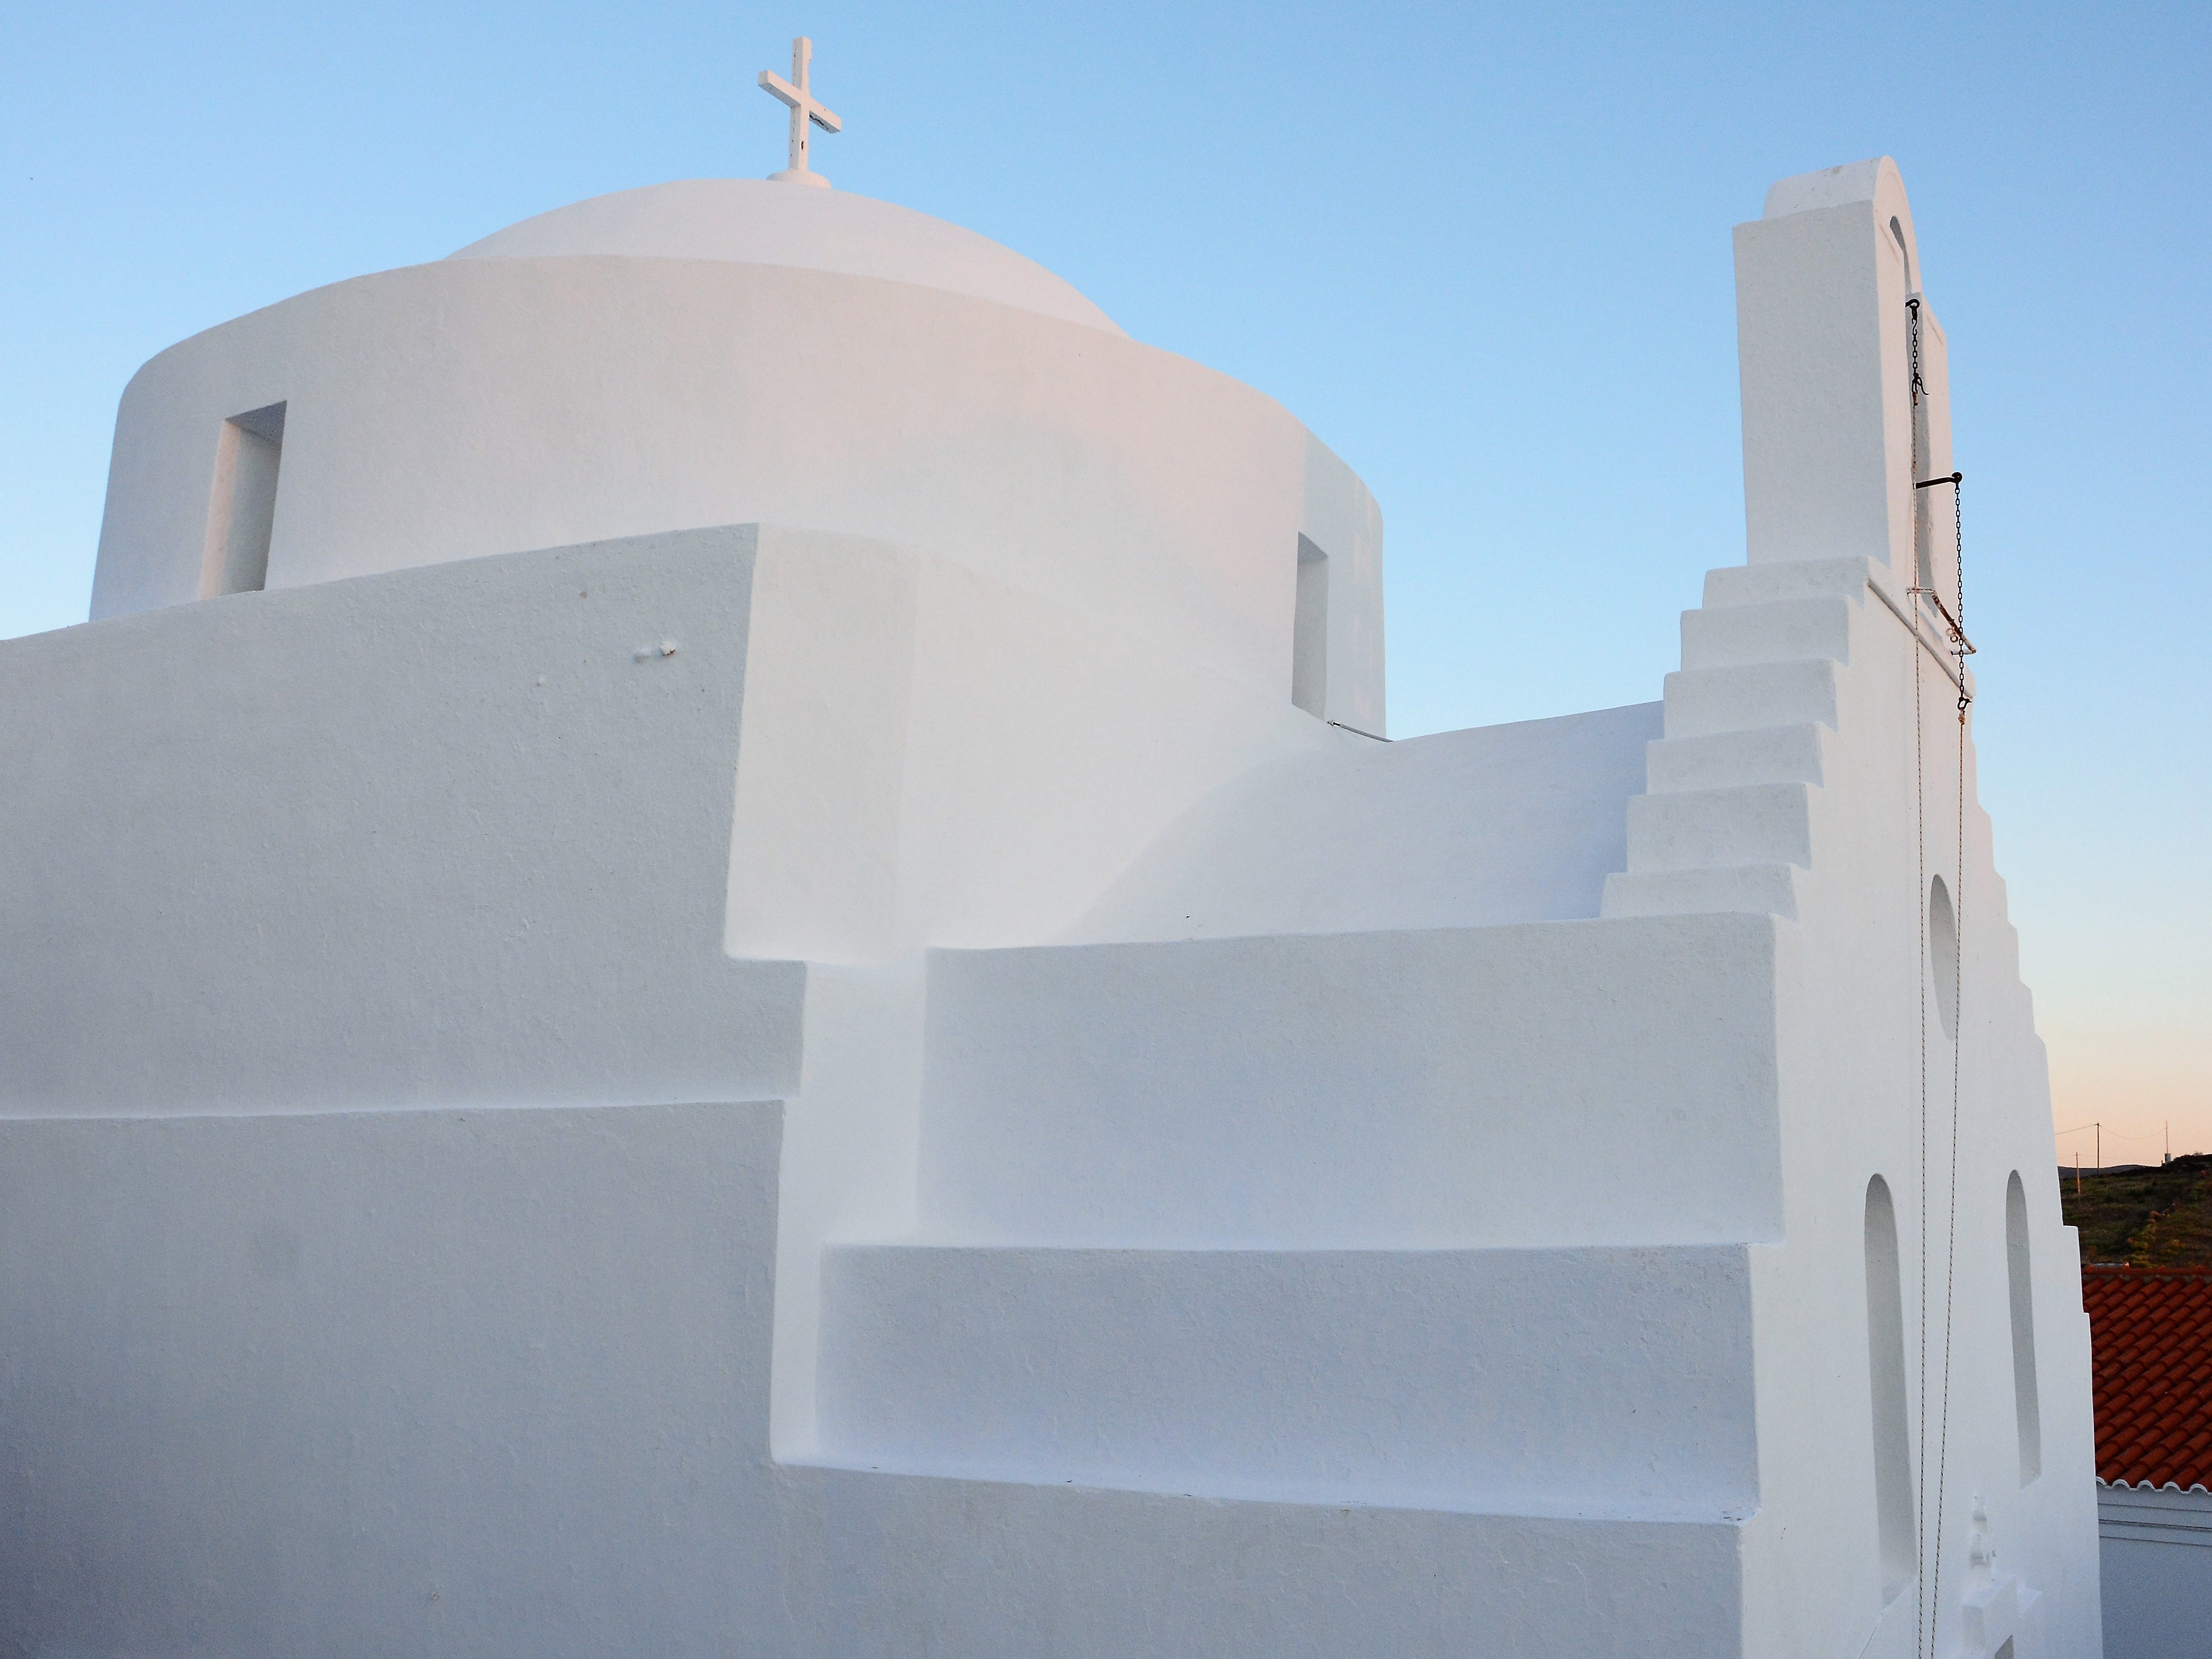 Religion still plays a prominent role in all of the islands in the Cyclades. There are over 100 churches and places of worship on Kythnos.